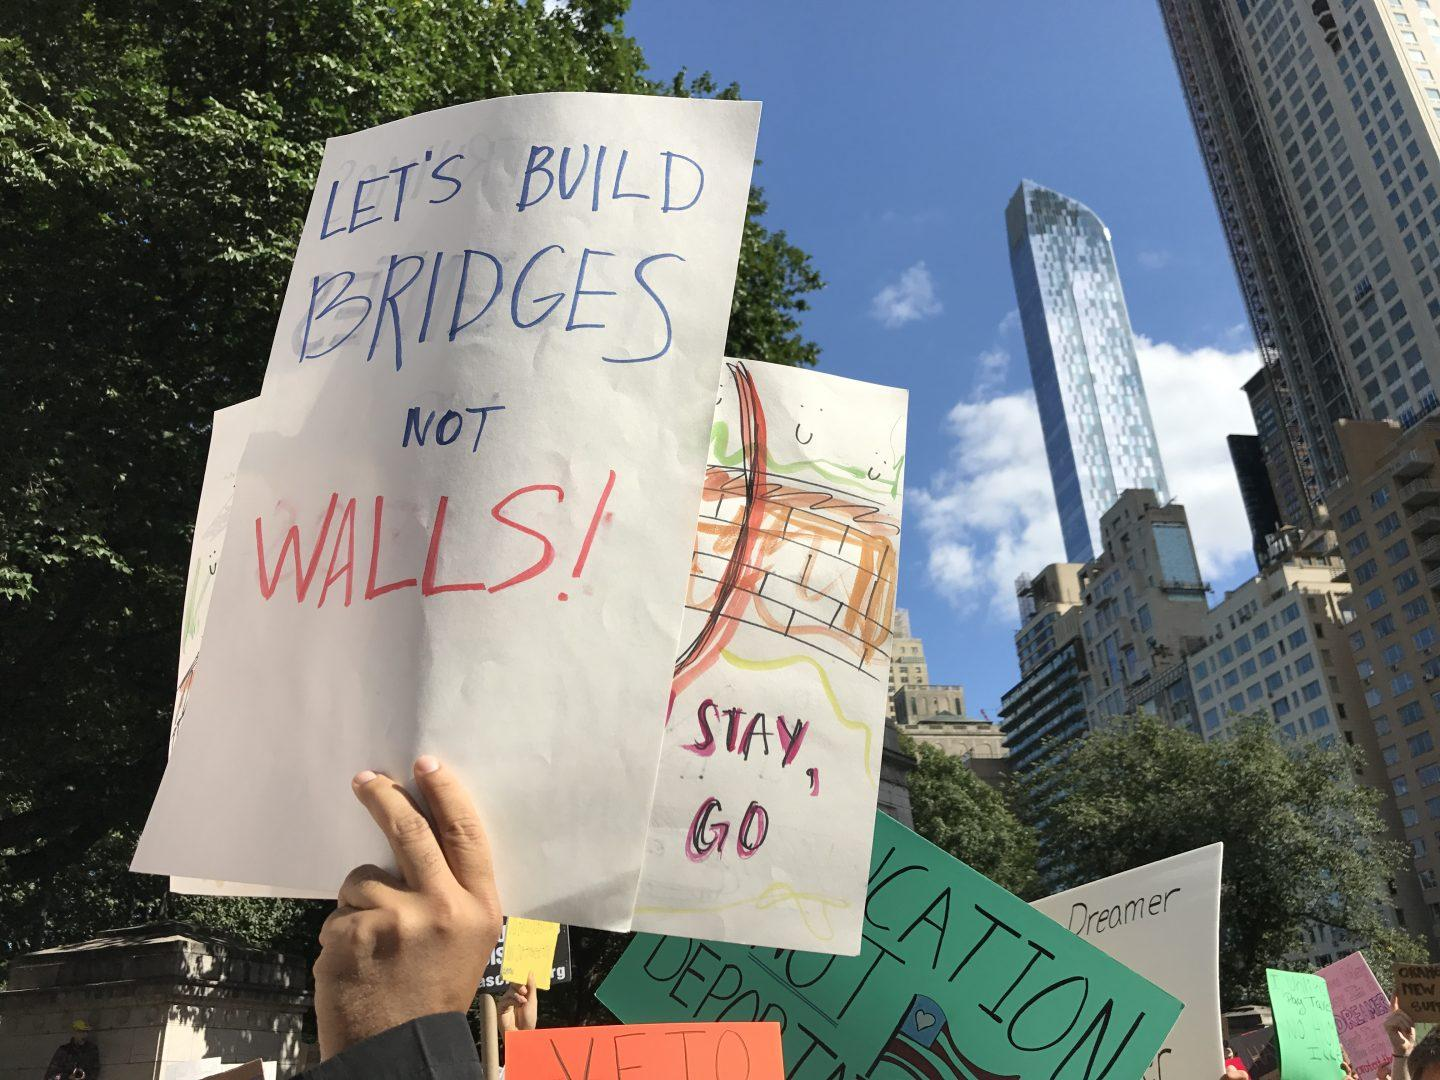 Following+President+Donald+Trump%27s+decision+to+phase+out+the+Obama-era+Deferred+Action+for+Childhood+Arrivals+%28DACA%29+program%2C+New+Yorkers+gathered+in+Columbus+Circle+today+to+demonstrate+their+support+for+DACA+recipients+and+all+immigrants.